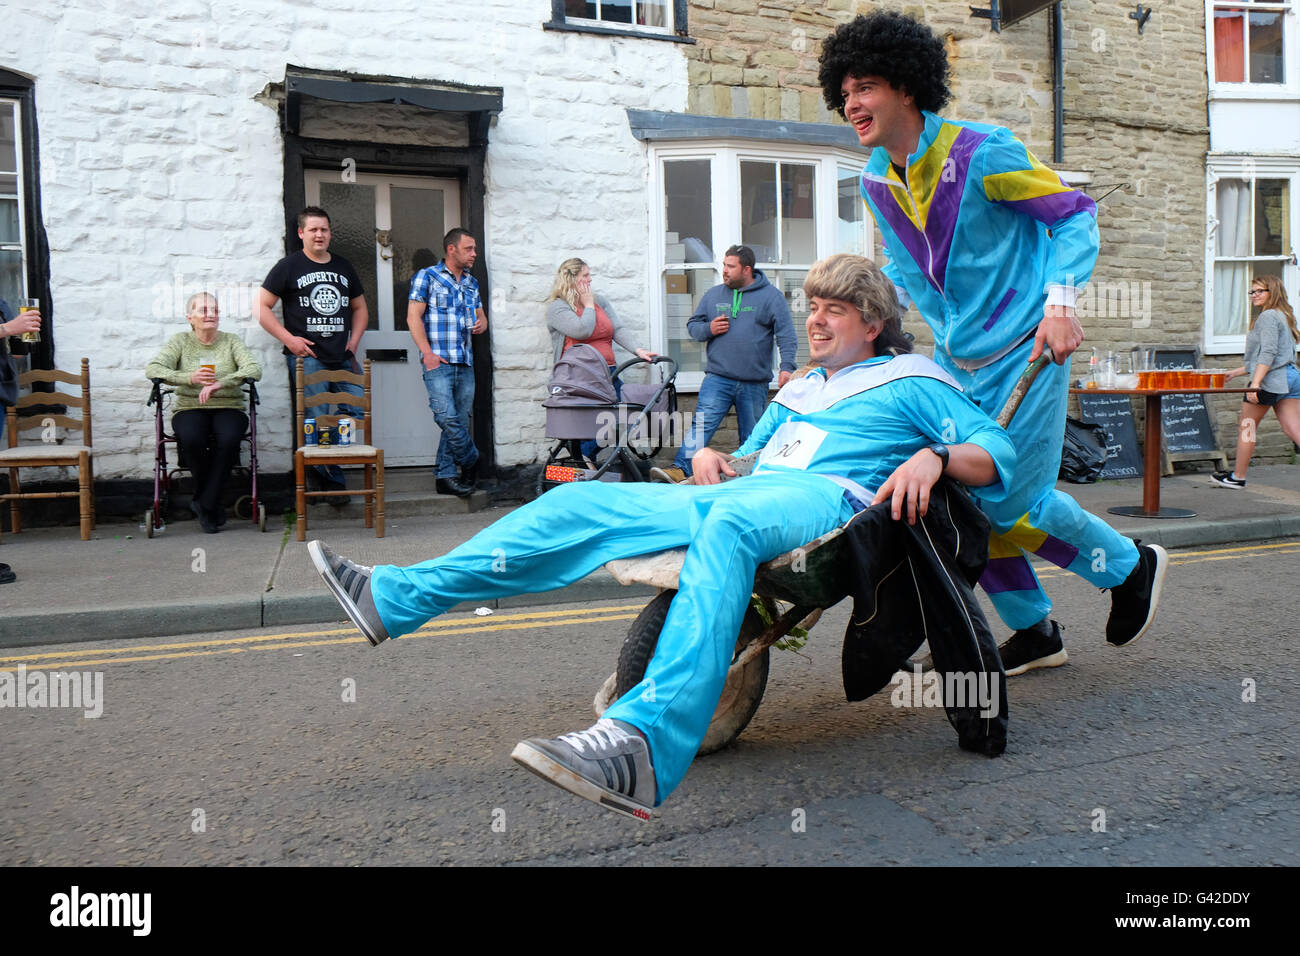 Kington, Herefordshire, UK - Saturday 18th June 2016 - Team shell suit take part in the 40th running of the annual - Stock Image